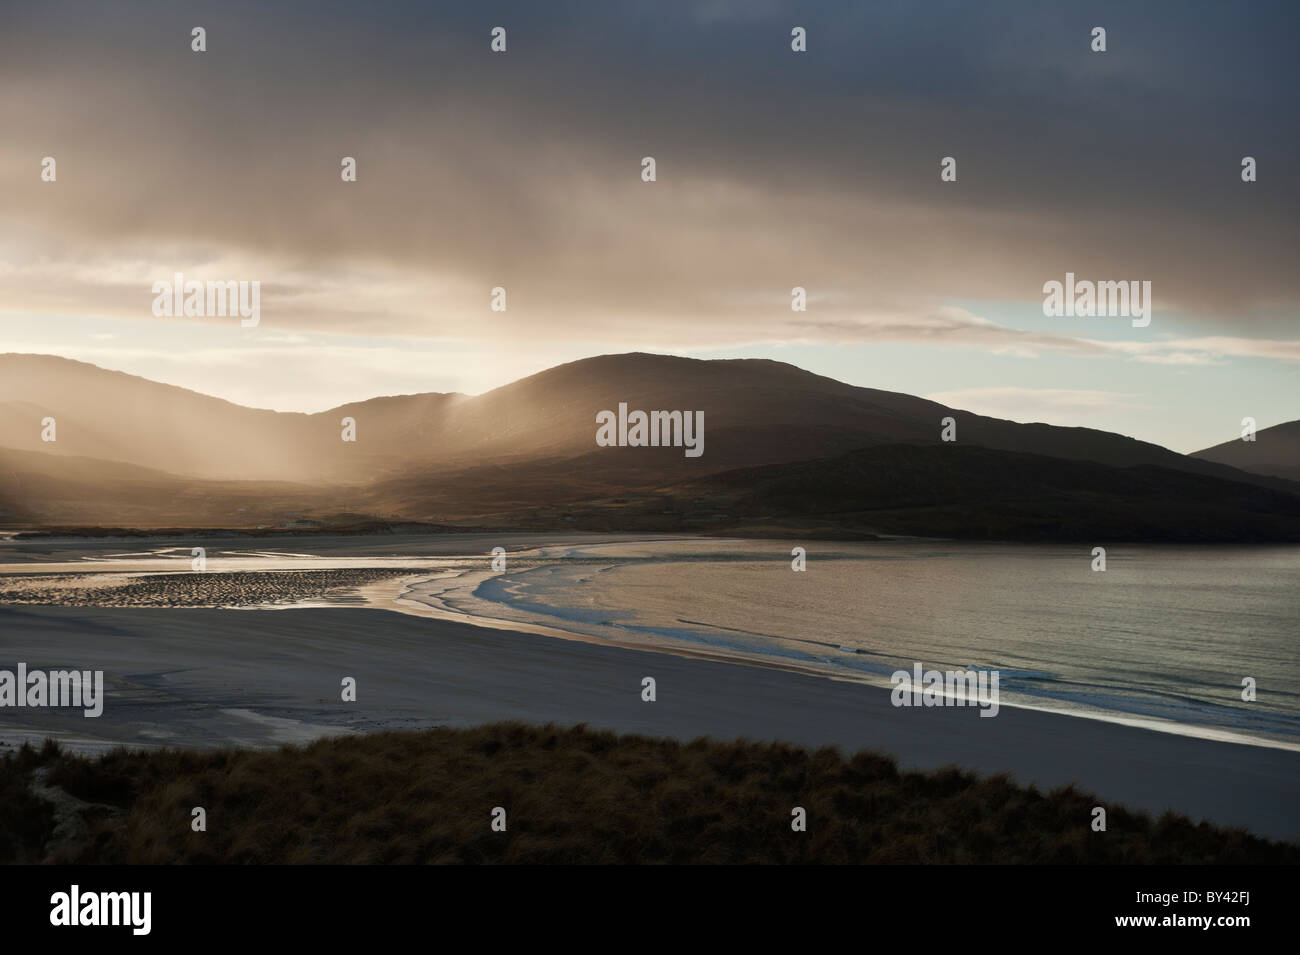 Rain falling over Isle of Harris, Viewed from Luskentyre Beach, Outer Hebrides, Scotland Stock Photo